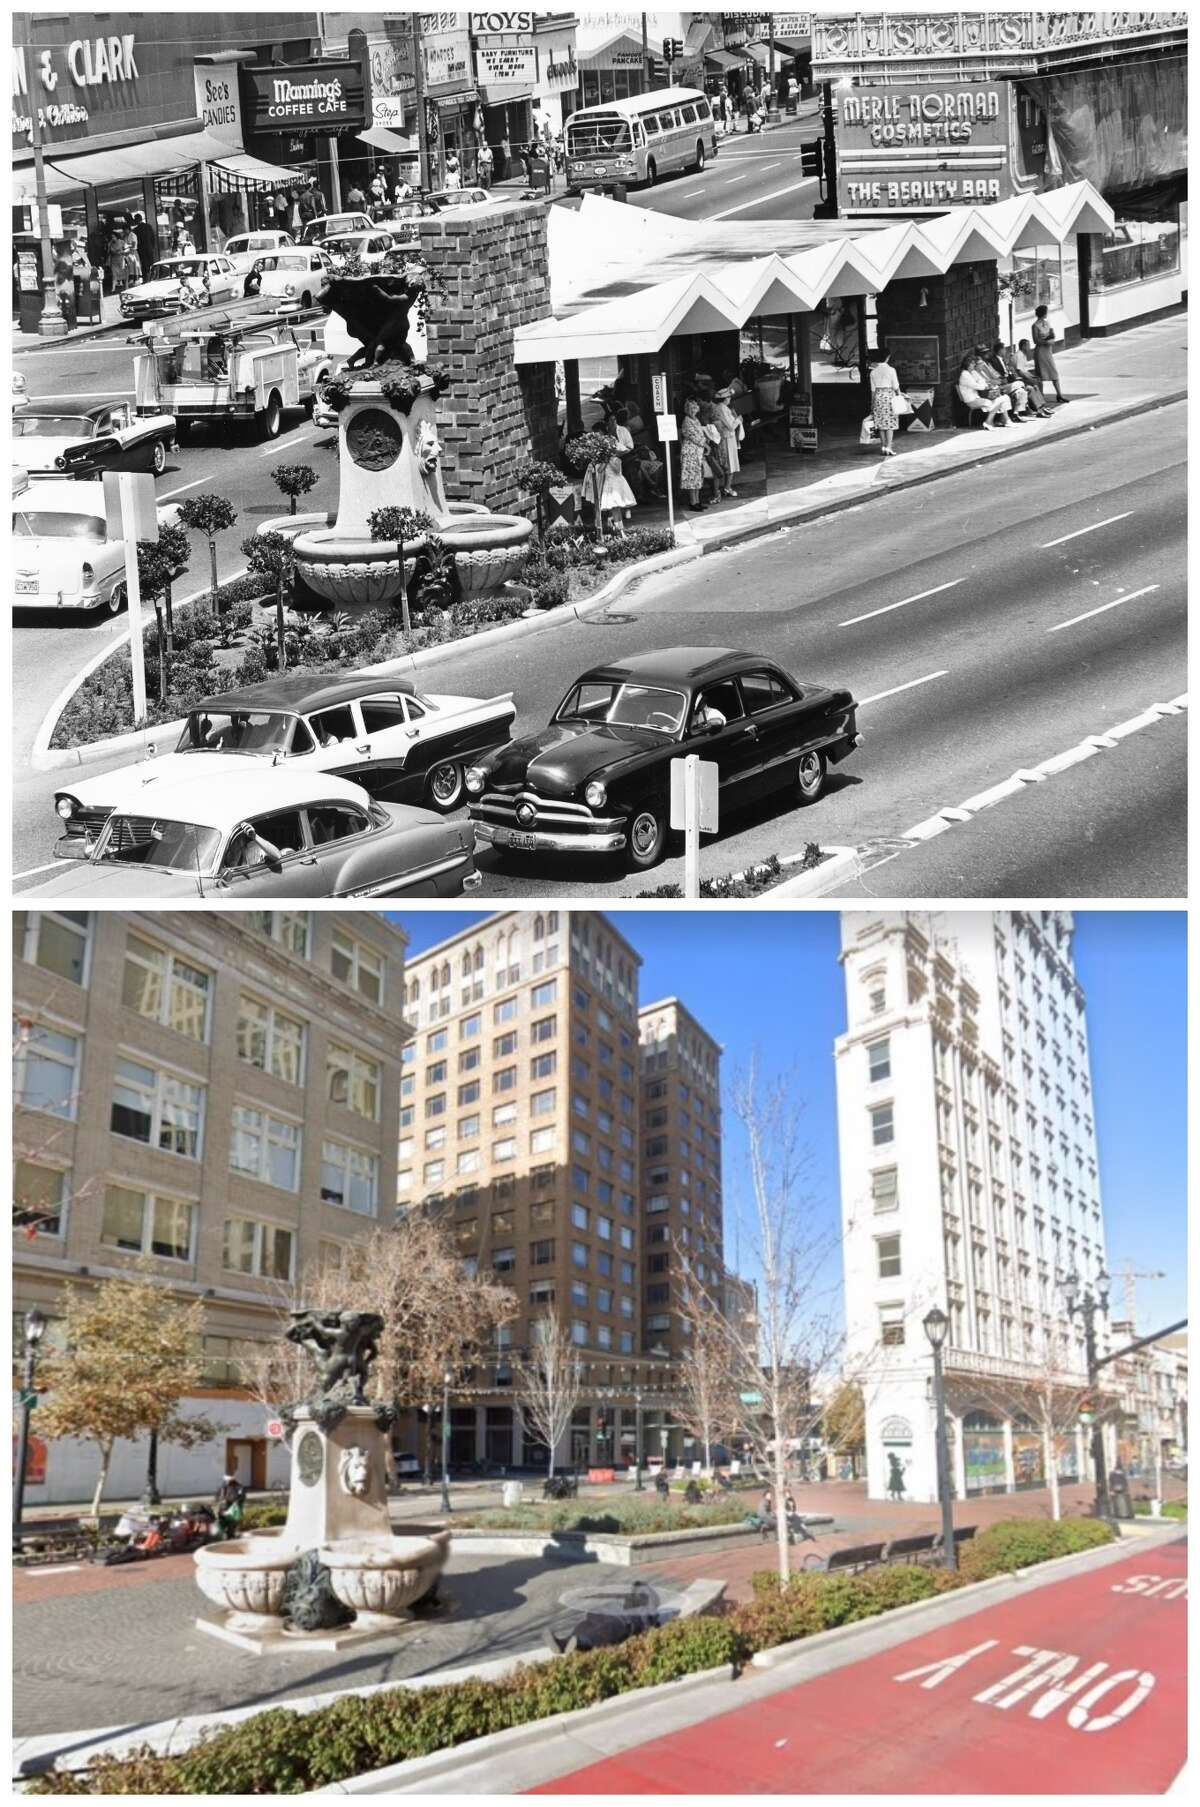 Latham Square in downtown Oakland where the Telegraph and Broadway intersect.  The archive photo was taken in 1961.